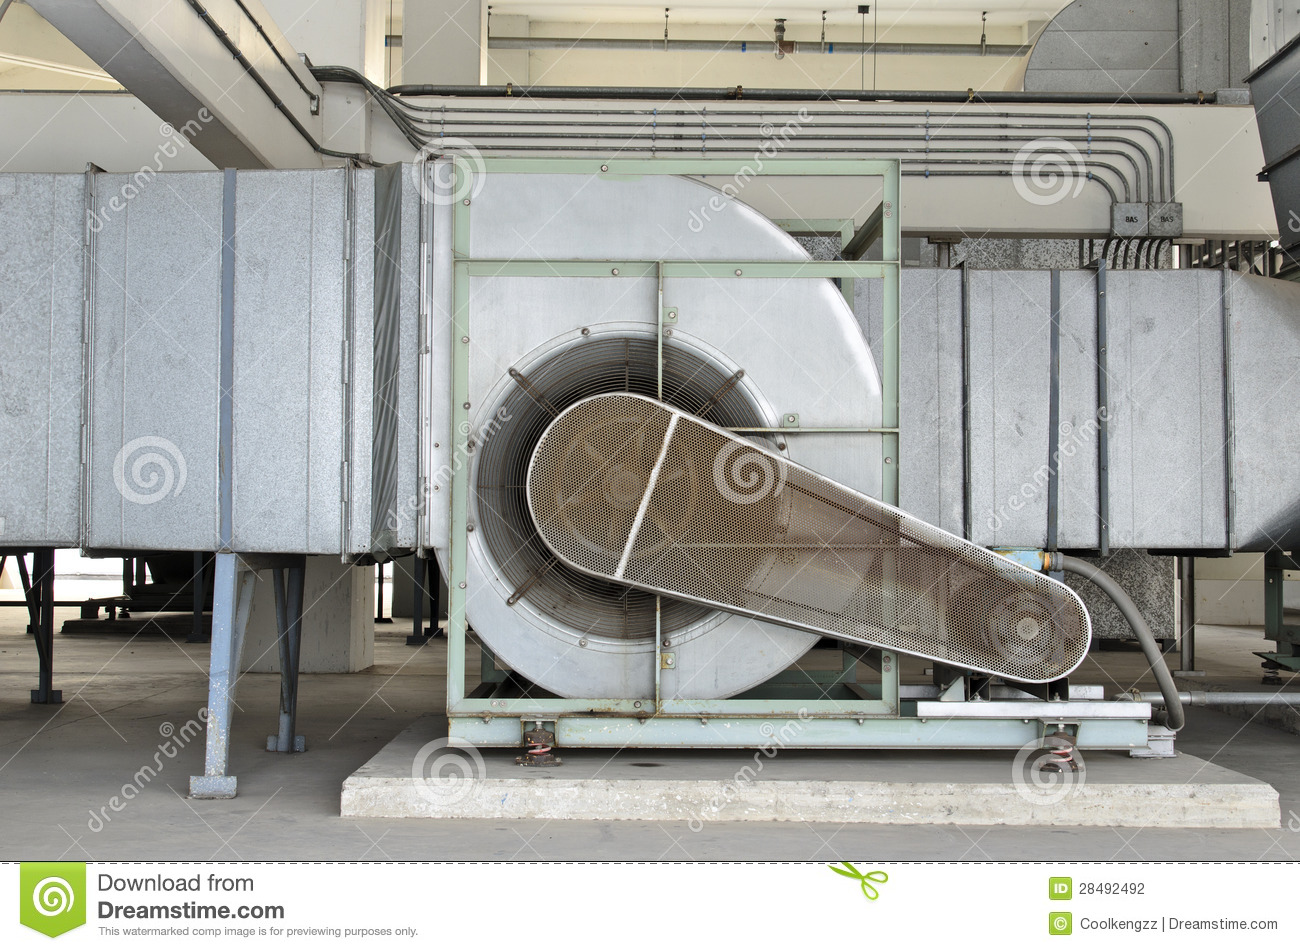 Huge Motor Blower For Chiller Stock Photography   Image  28492492